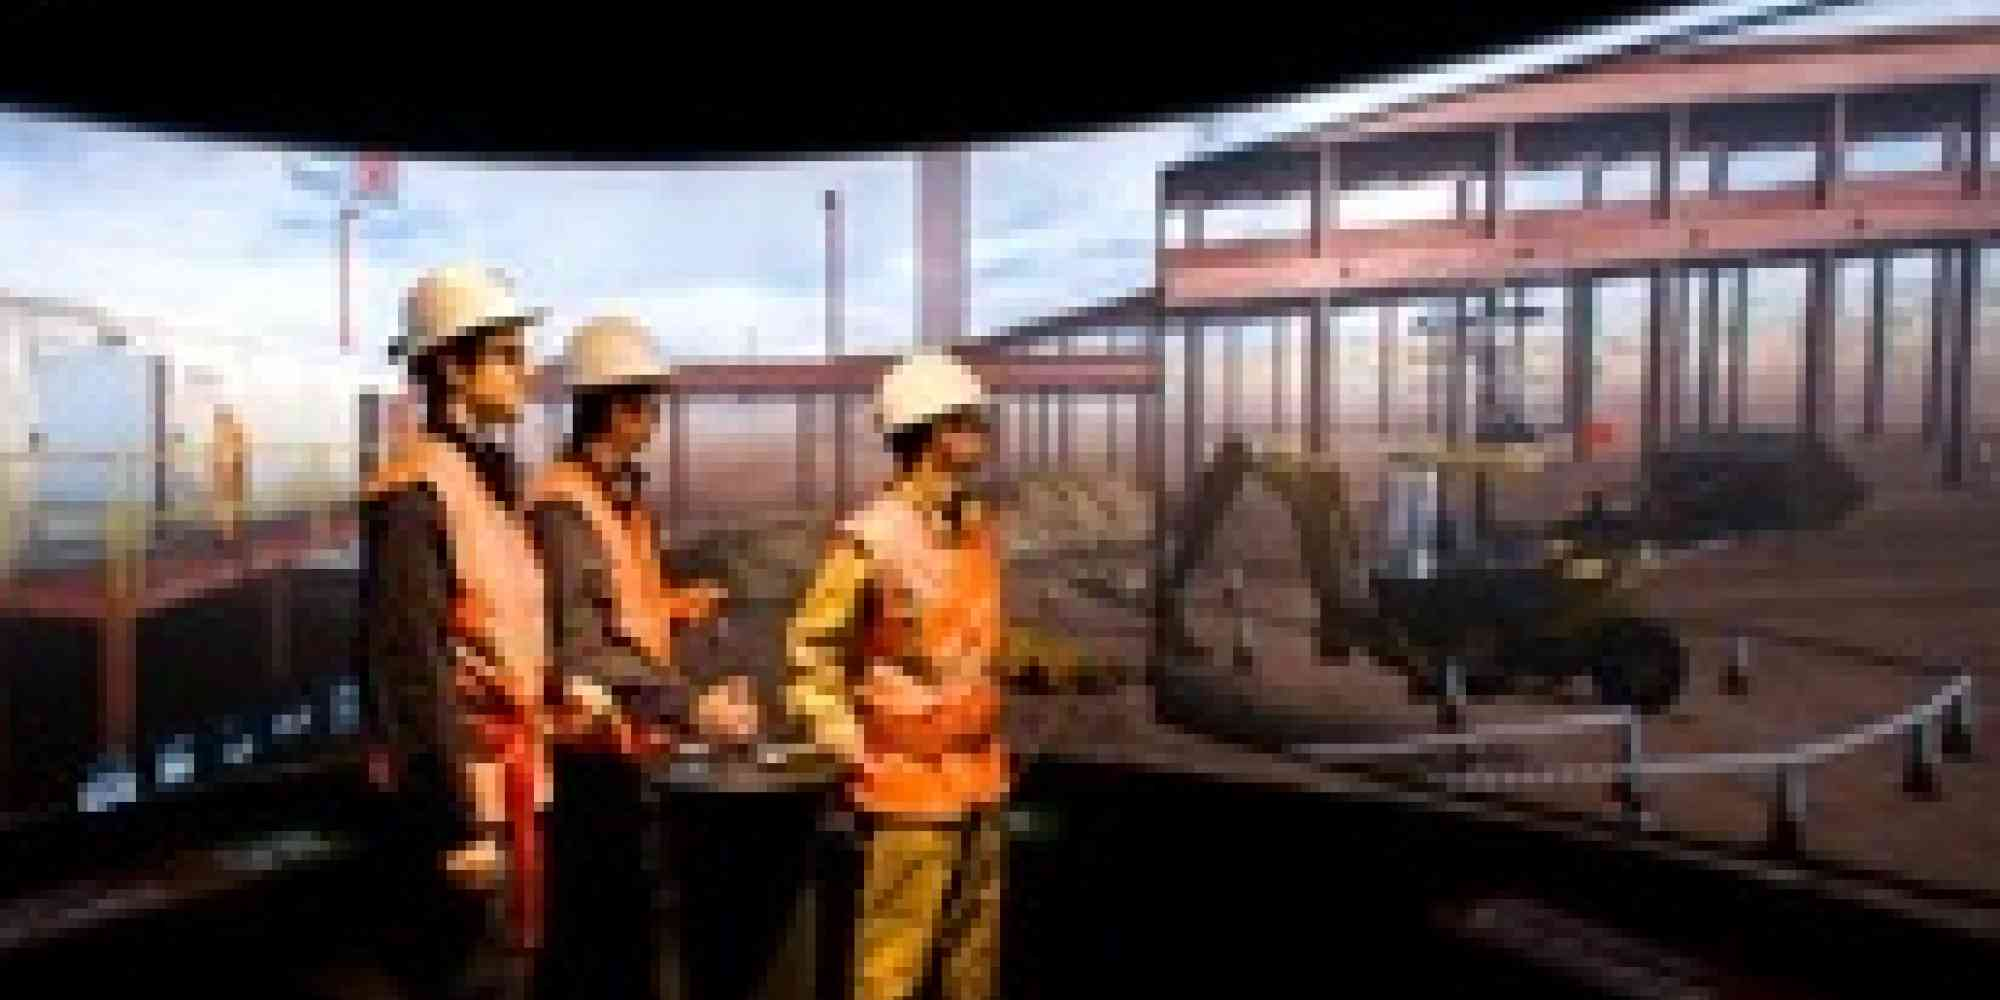 Construction Safety Training in Virtual Reality